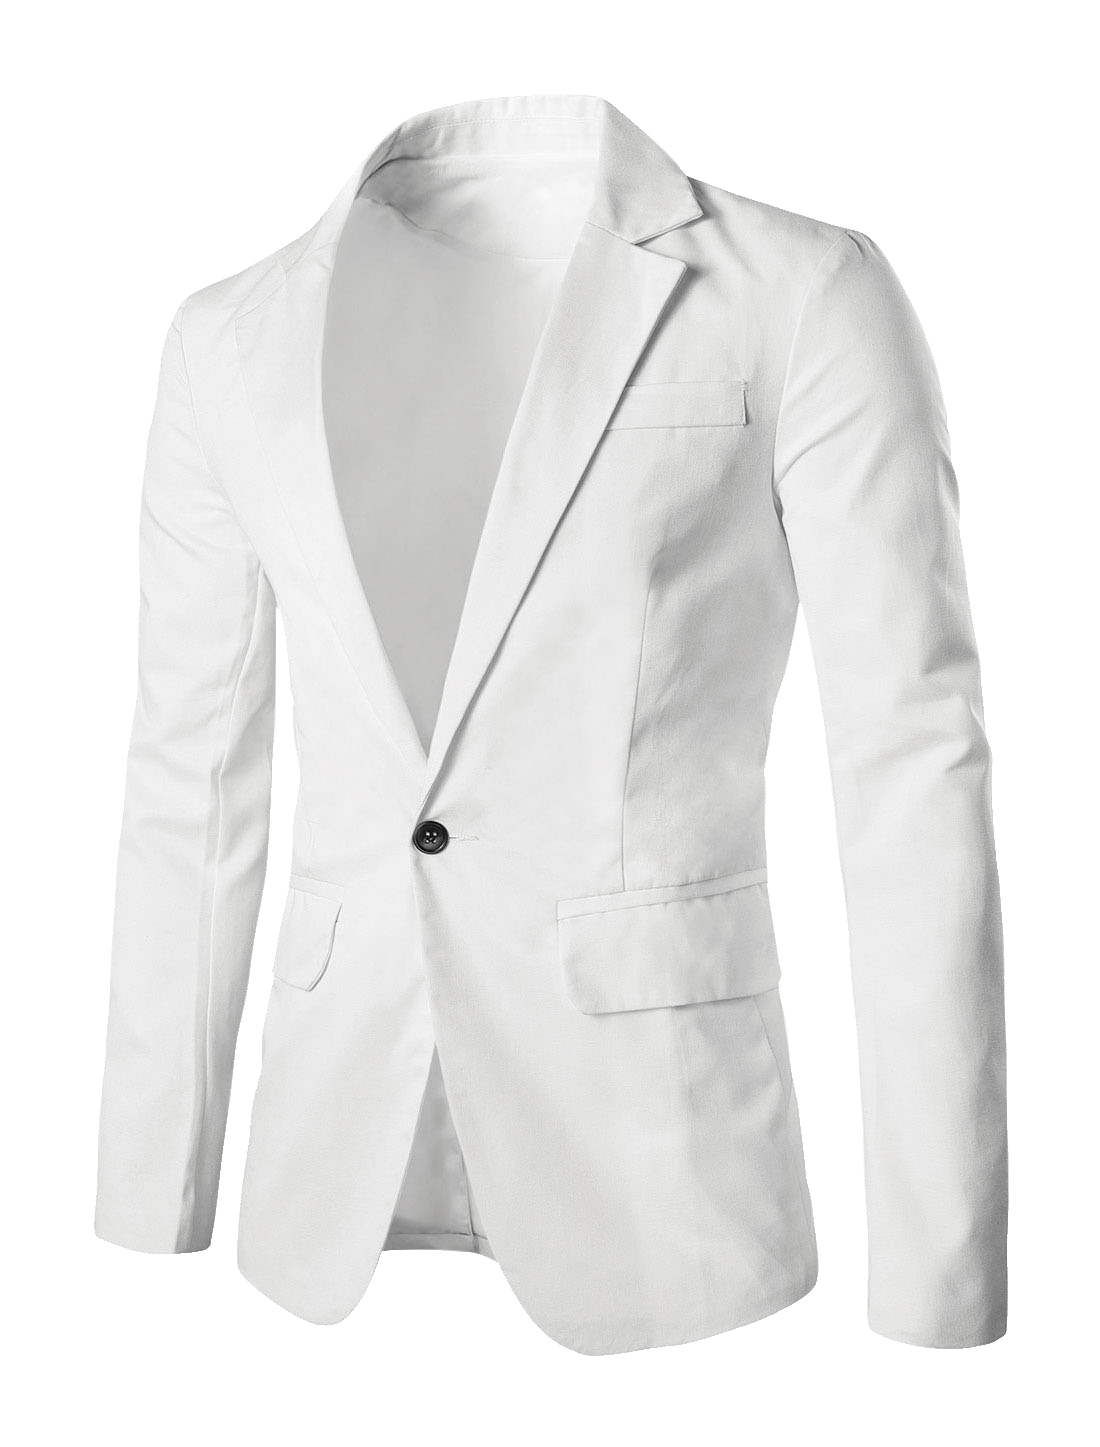 Men Notched Lapel One Patch Chest Pocket Autumn Blazer White M